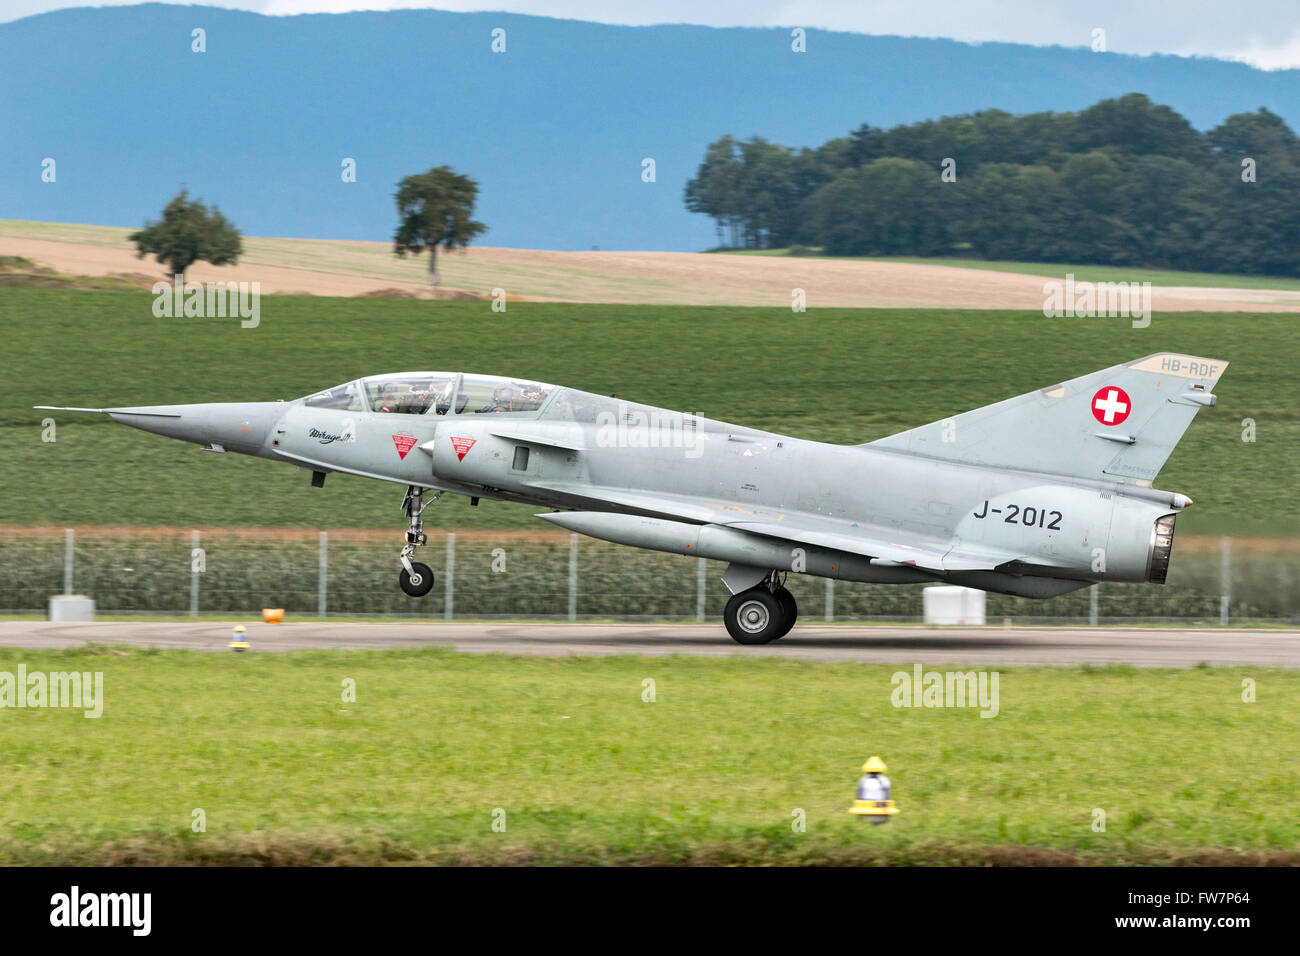 Dassault Mirage III DS fighter aircraft in Swiss Air Force markings (J-2012), the aircraft carries the civil registration - Stock Image